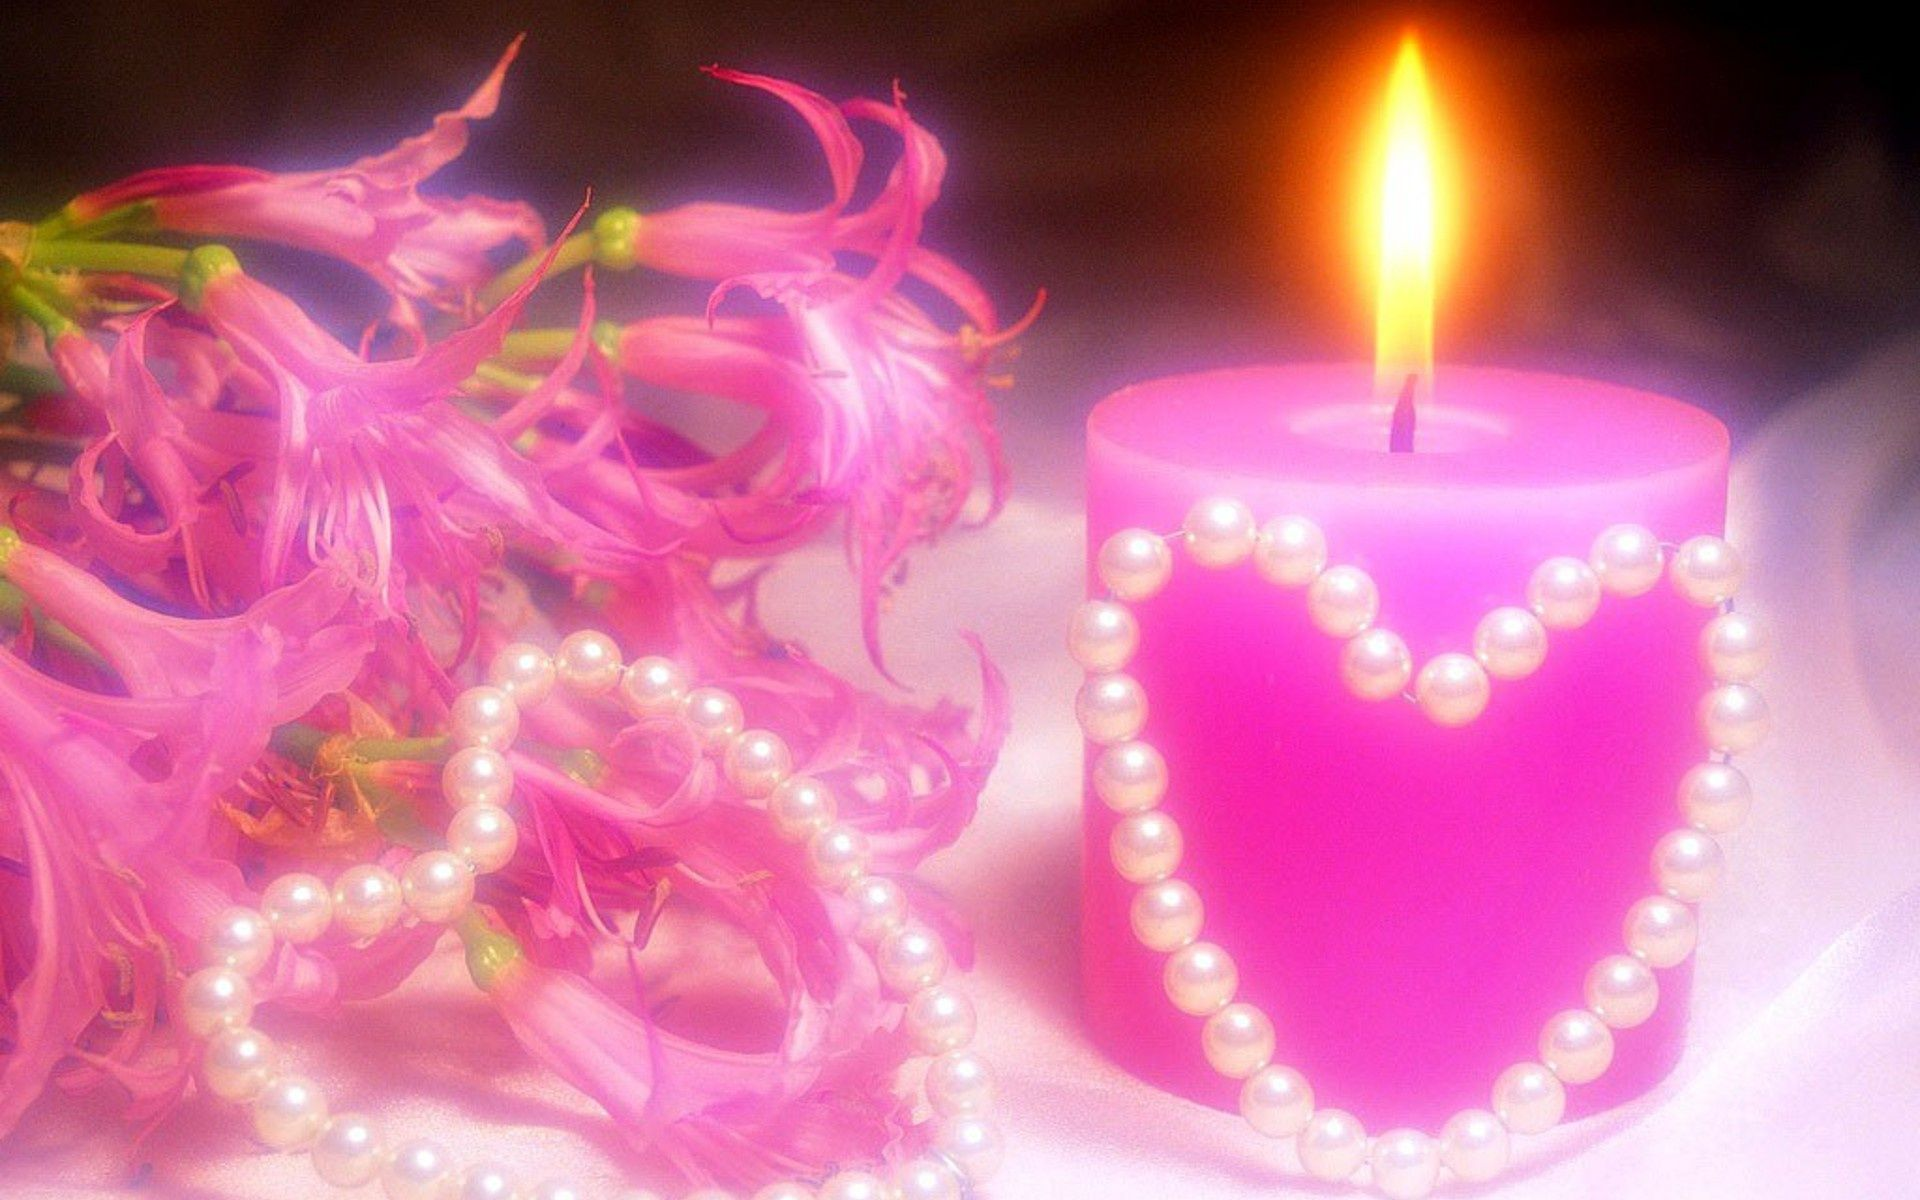 3 Beautiful Heart Candle 3 Romantic Candles Pink Candles